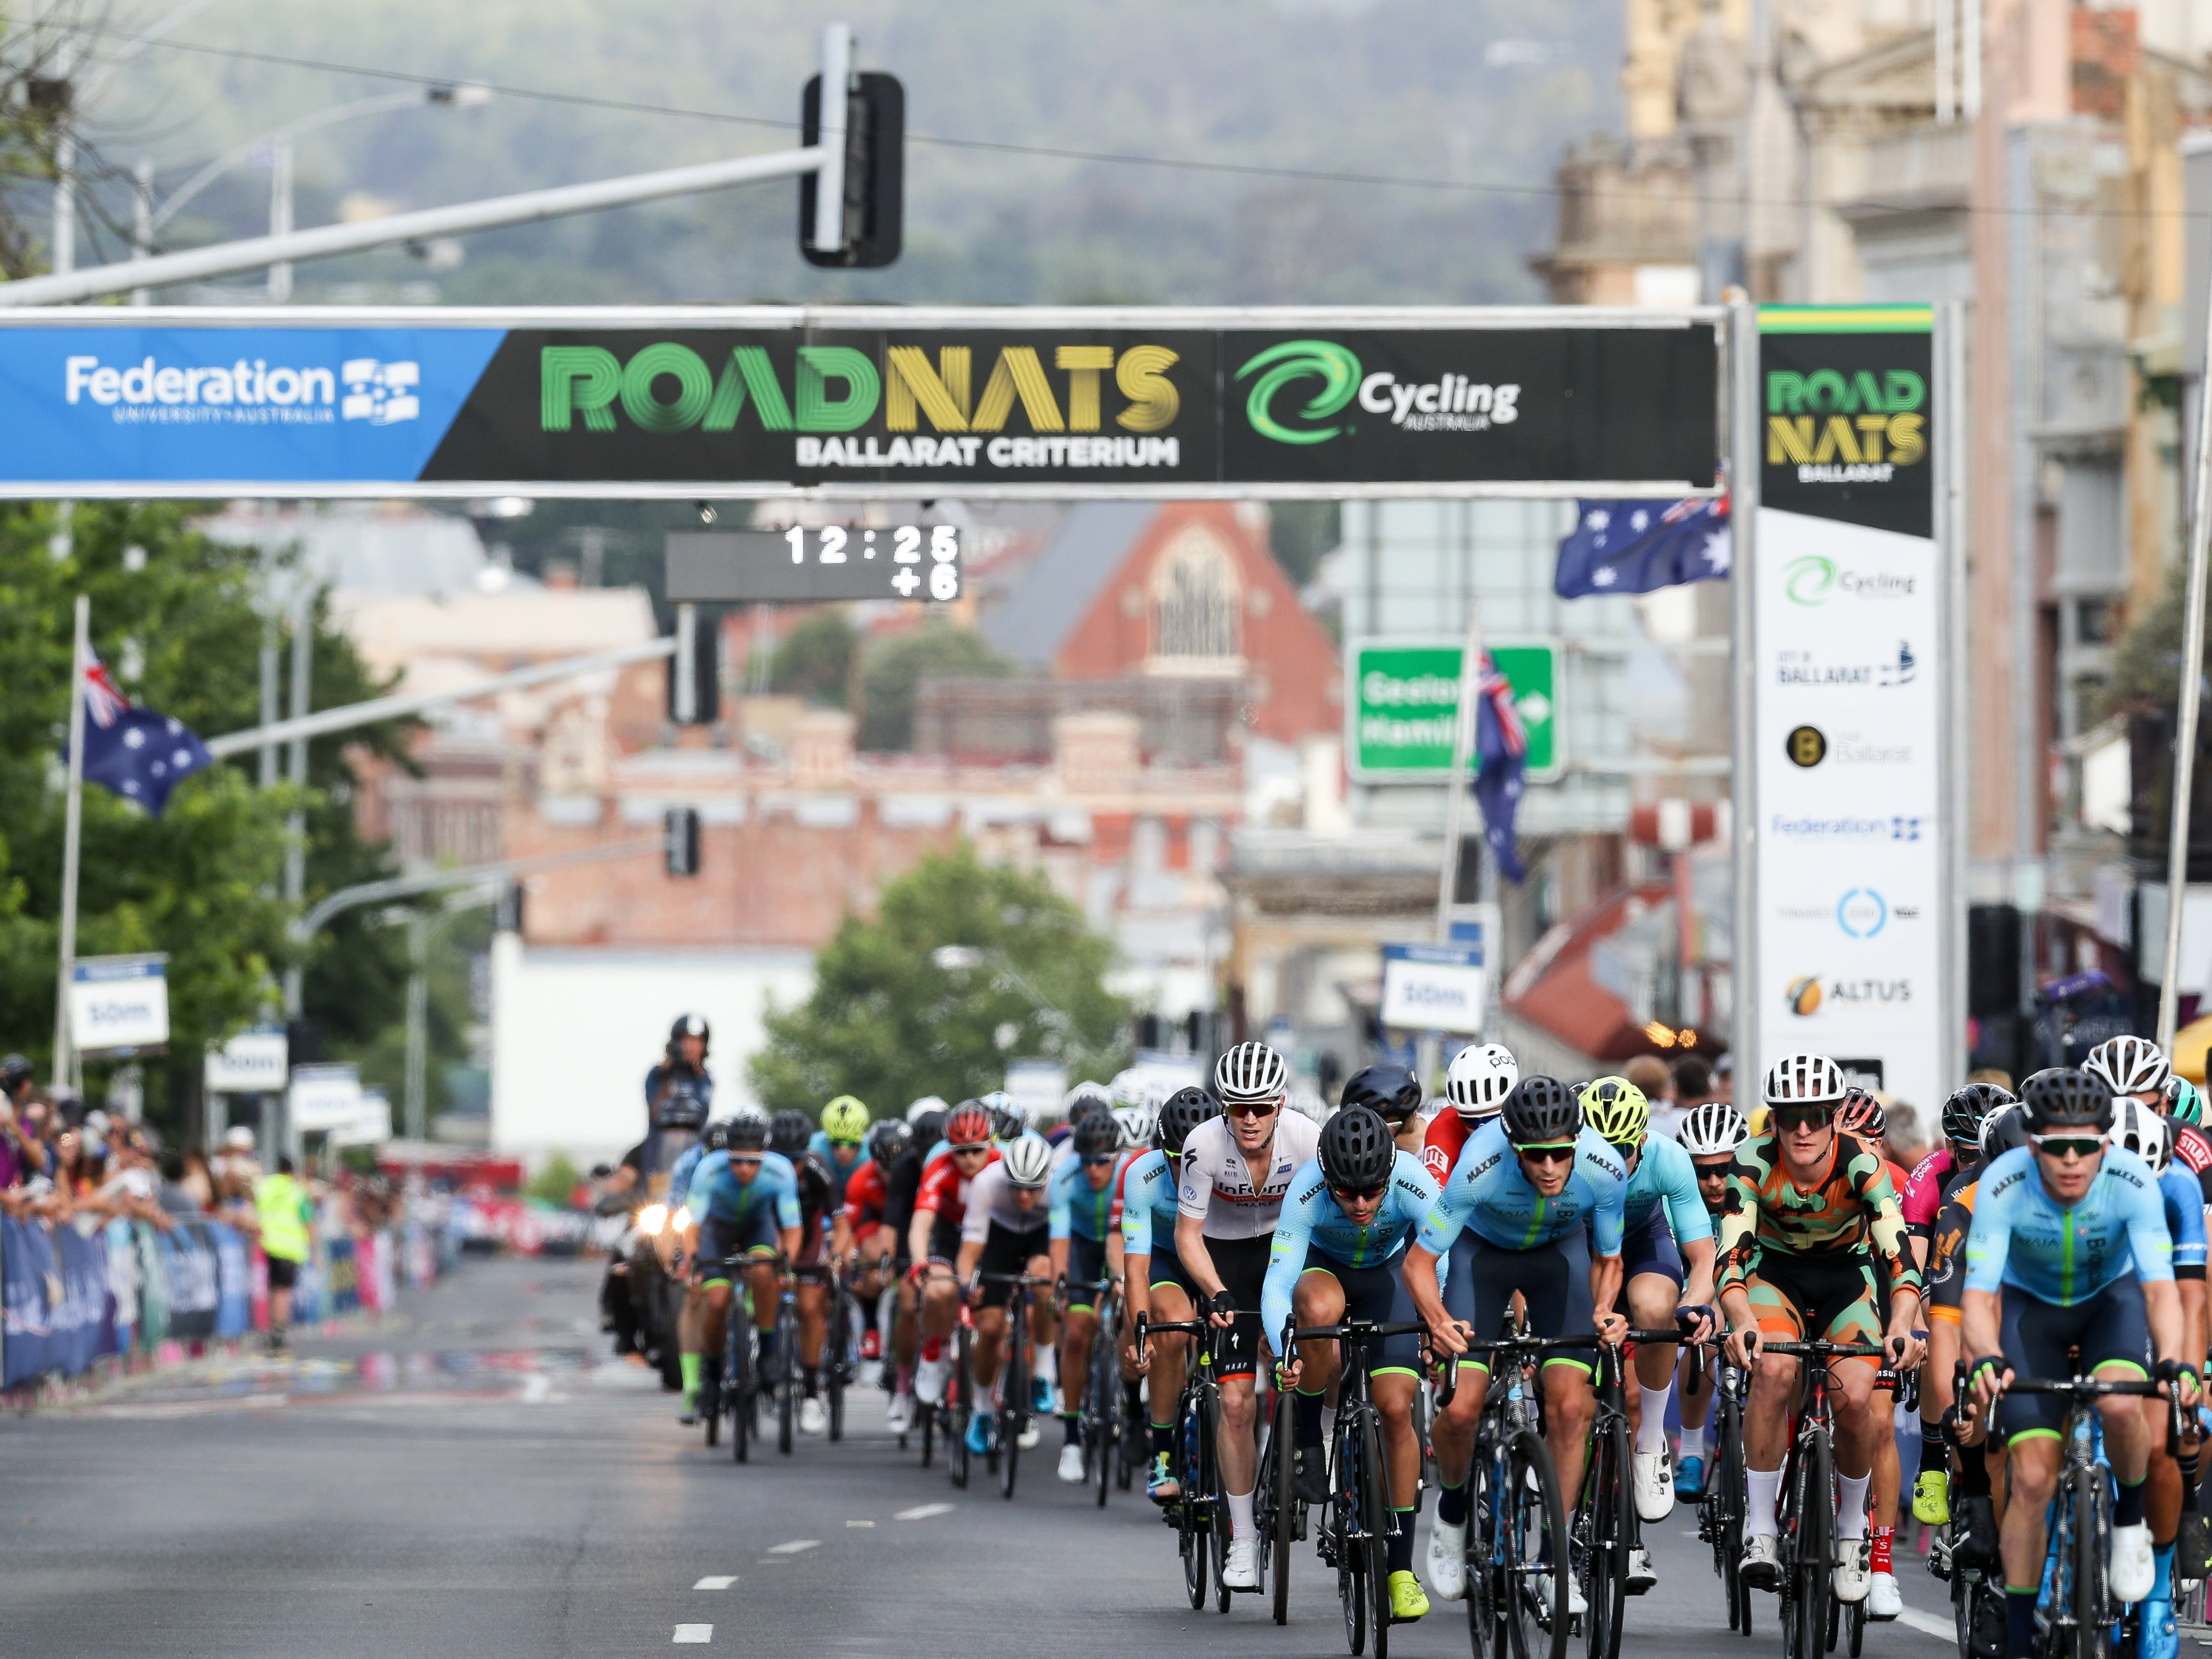 Federation University Criterium National Championships - Ballarat - Accommodation Sydney